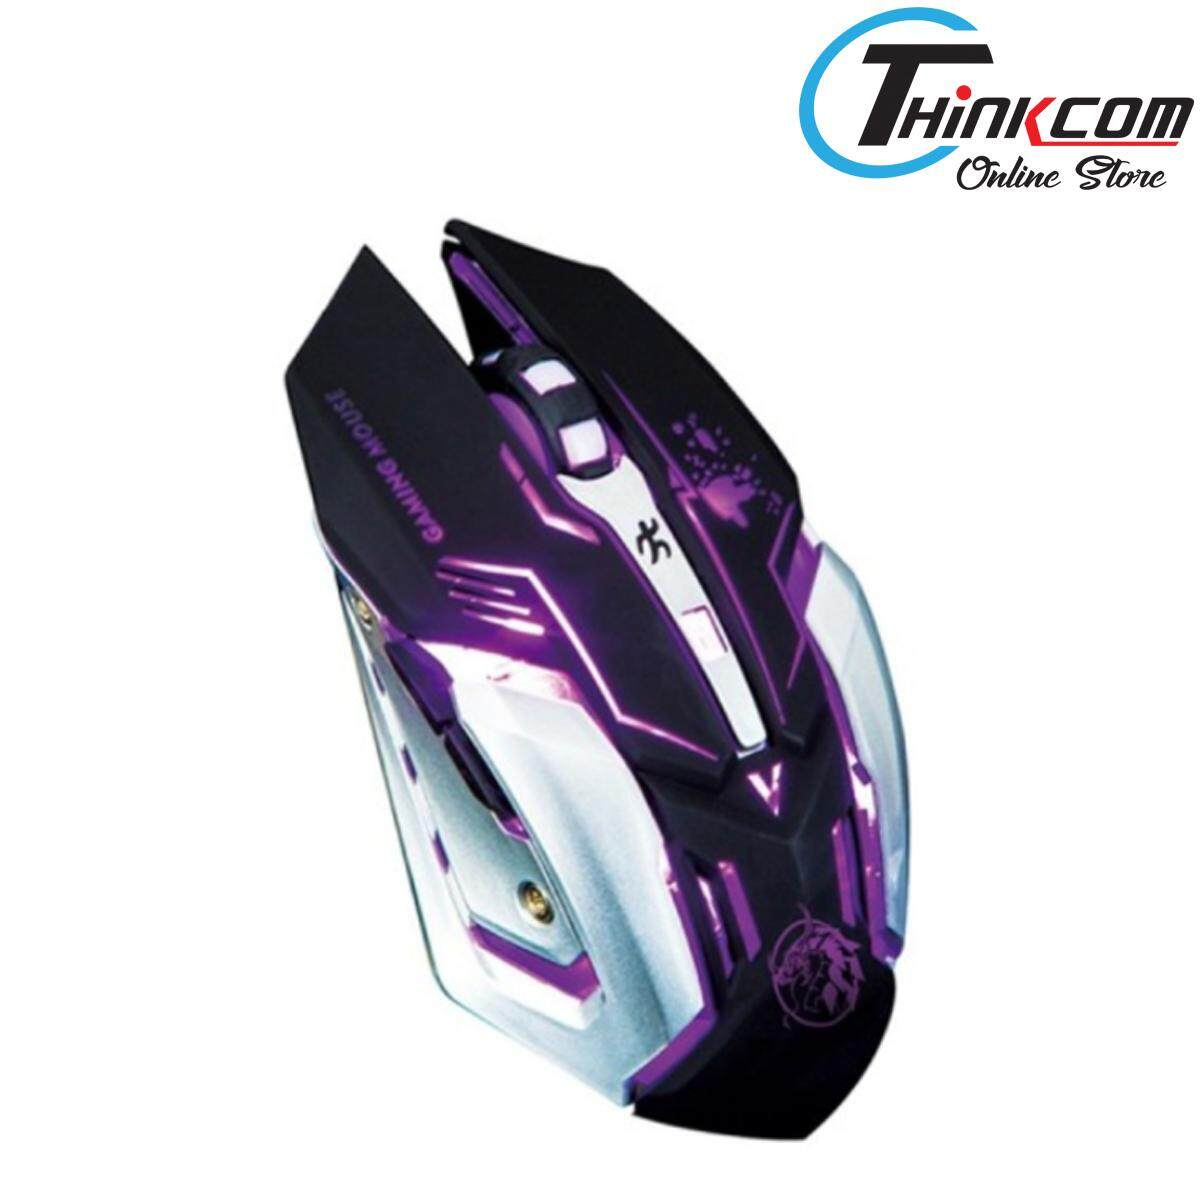 Sell Imperion Warrior 10 Cheapest Best Quality My Store Keyboard Gaming Myr 29